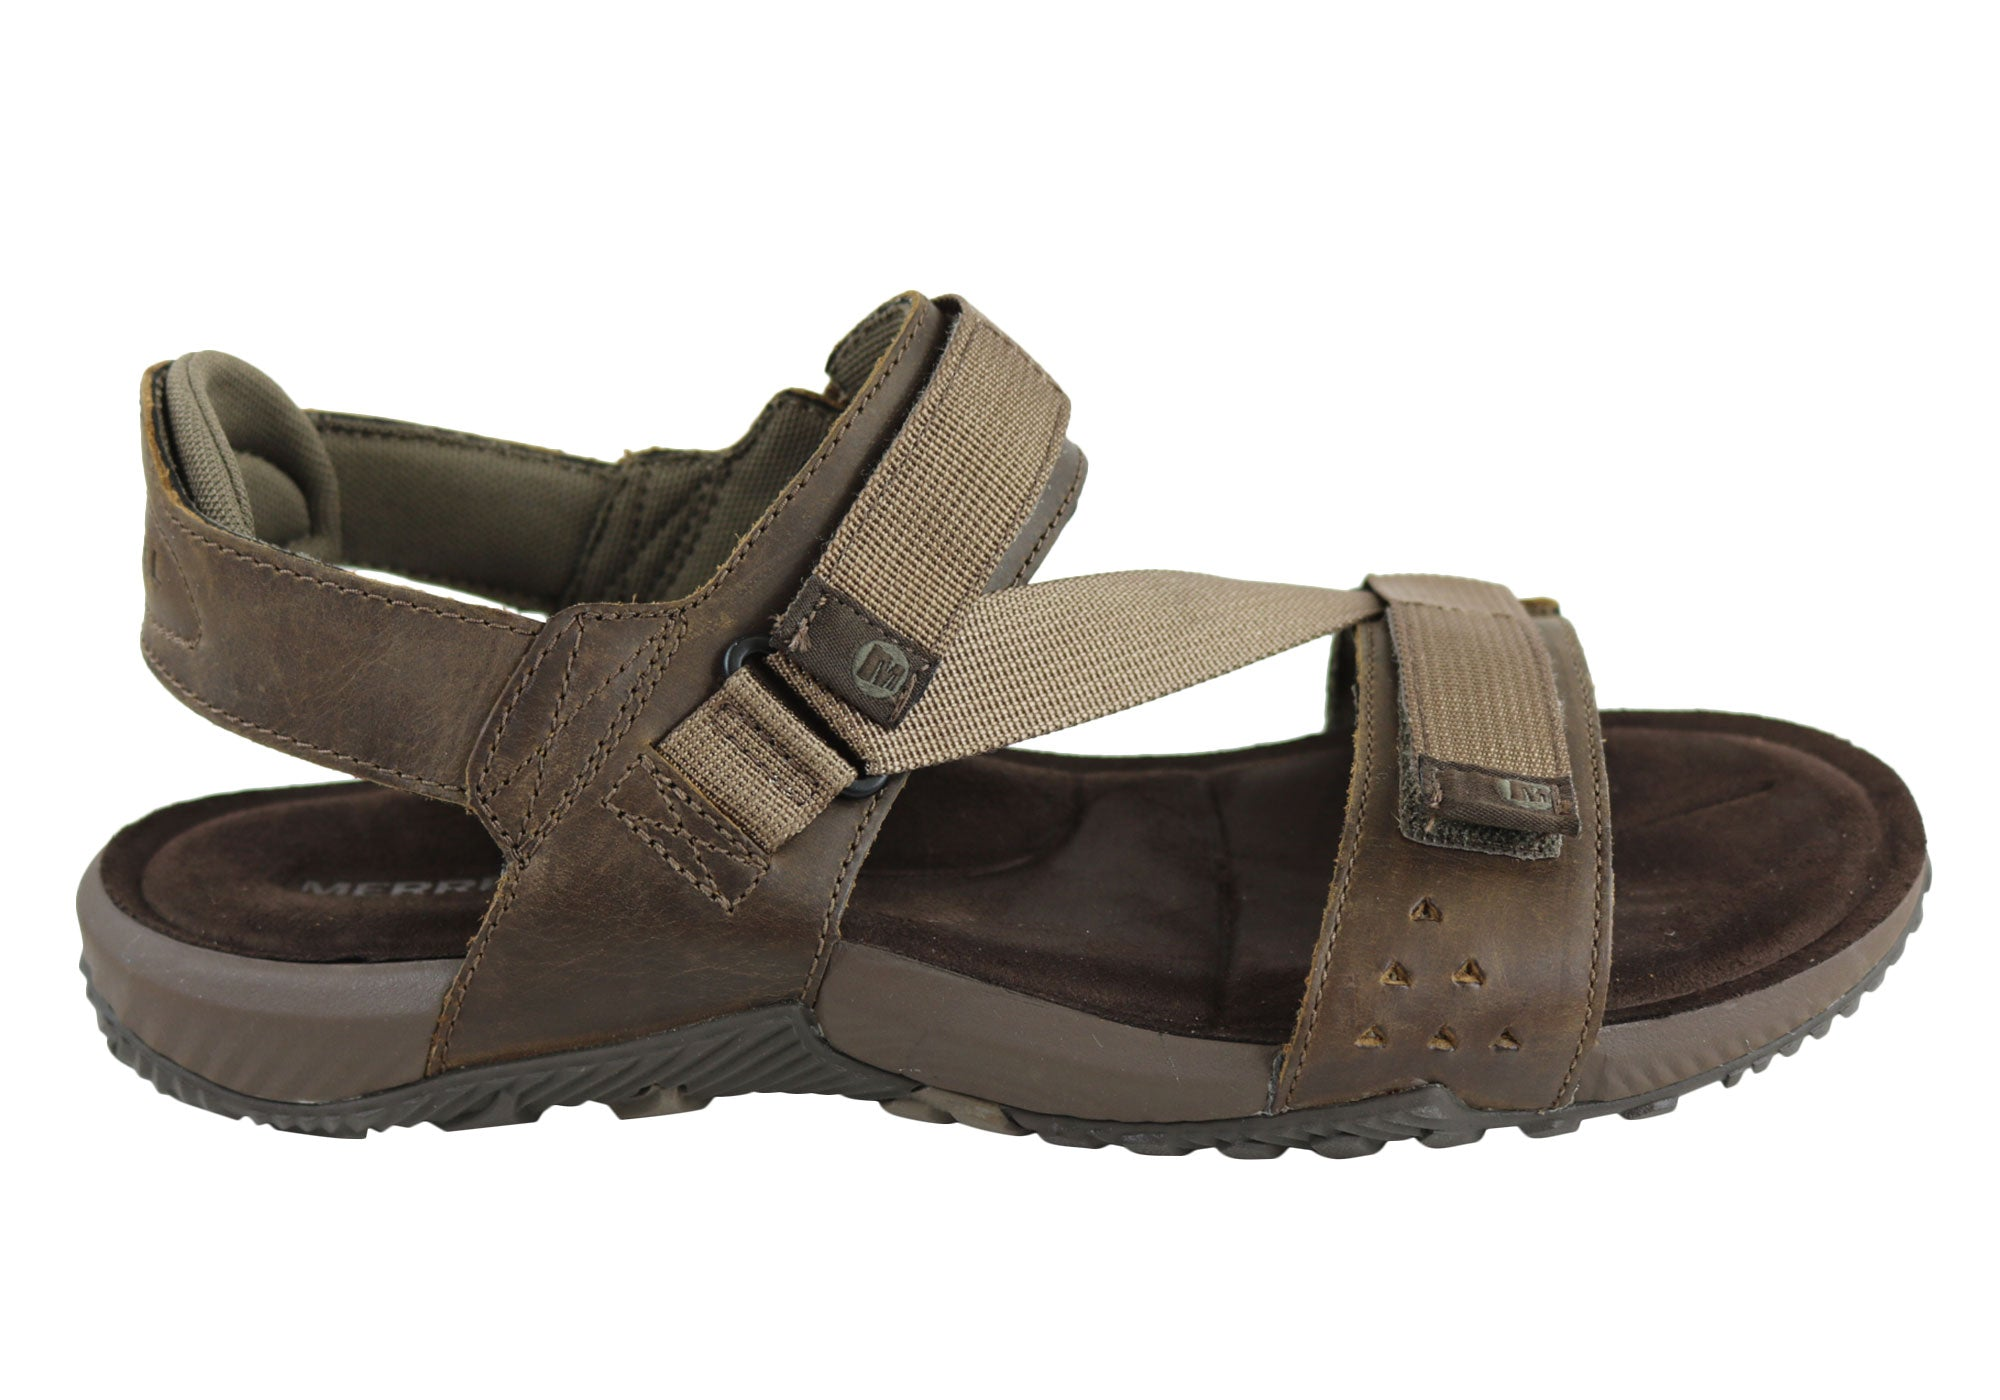 490c34d3b441 Details about Merrell Terrant Strap Mens Comfortable Cushioned Leather  Sandals